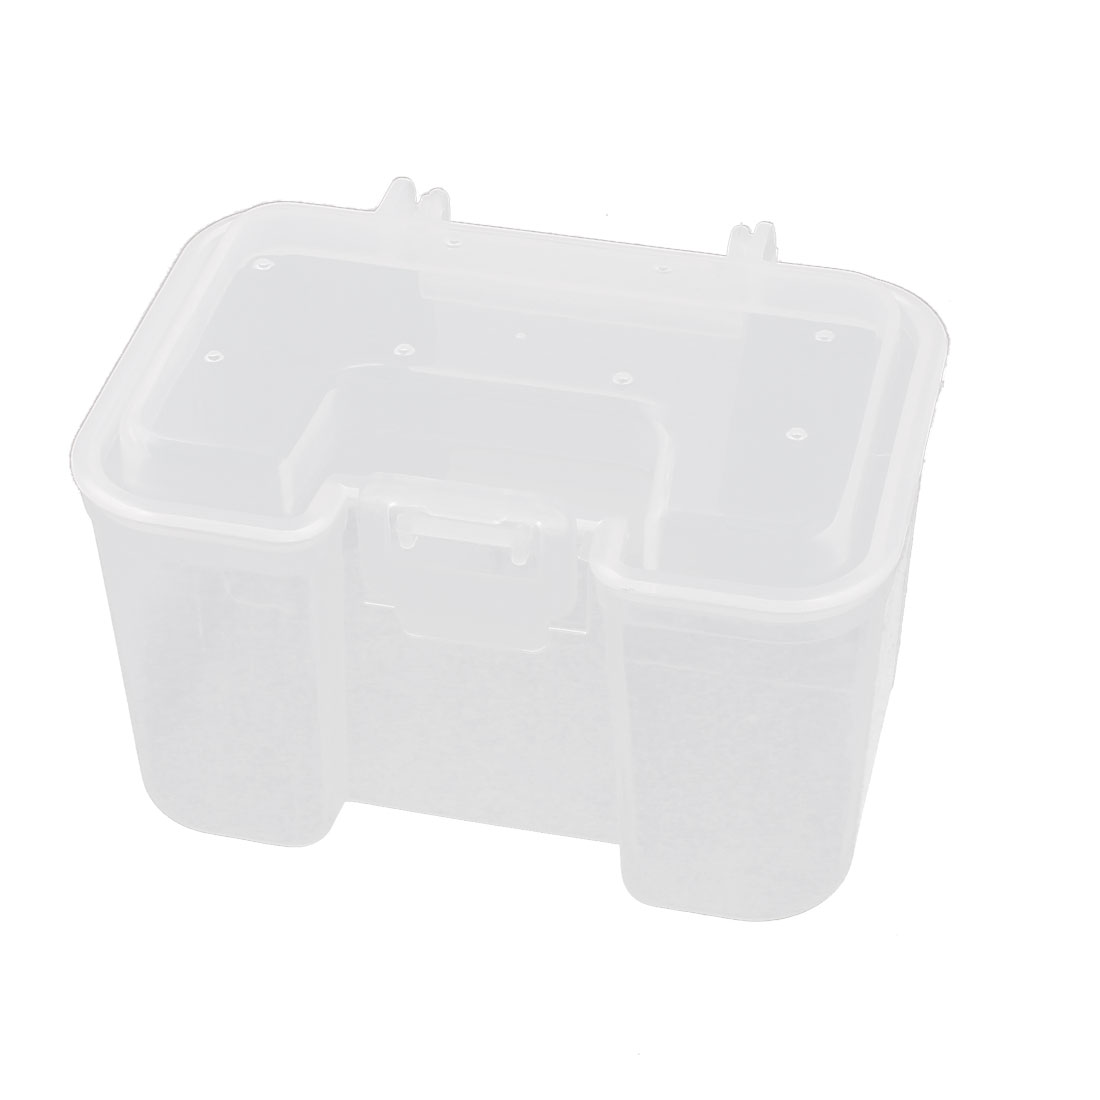 Angler Fishing Clear White Plastic Lure Bait Case Storage Box Holder 11cmx8cm